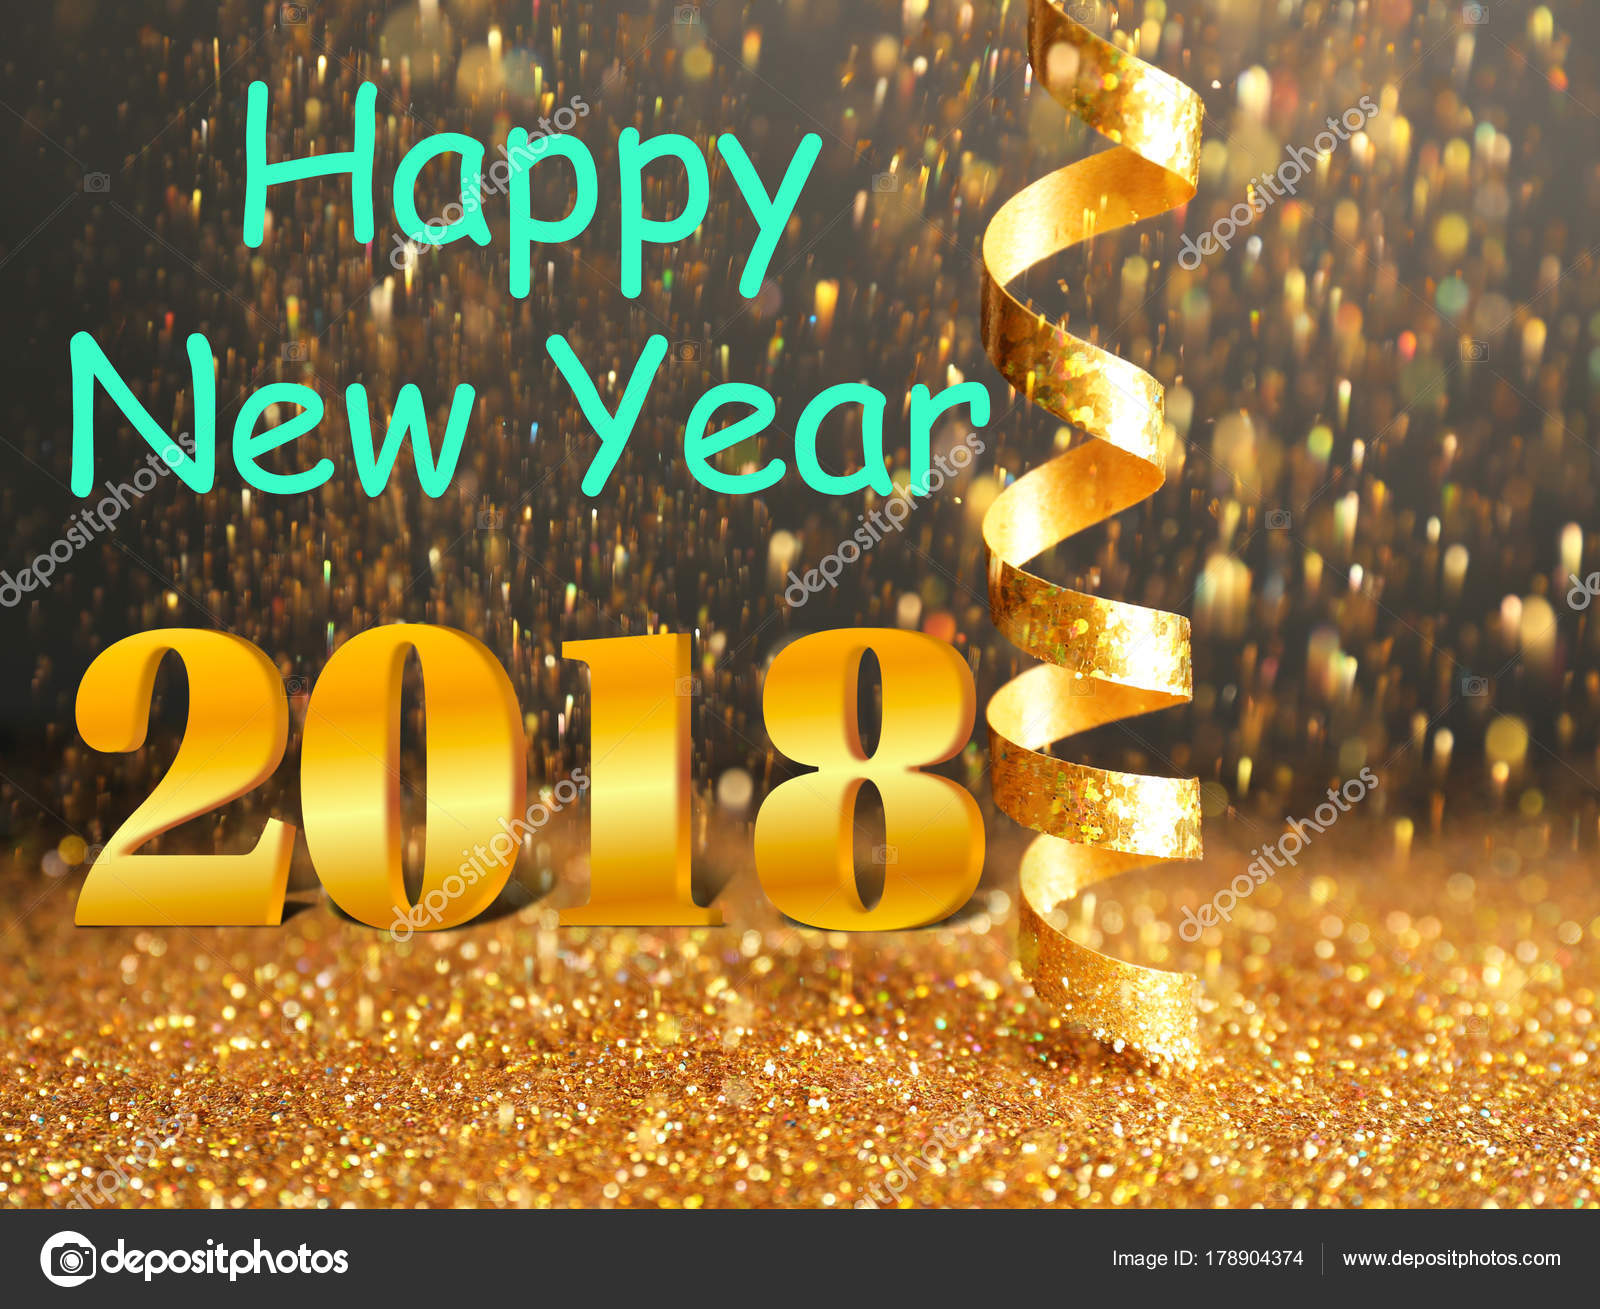 message happy new year 2018 with festive streamer and shiny glitter on background stock photo